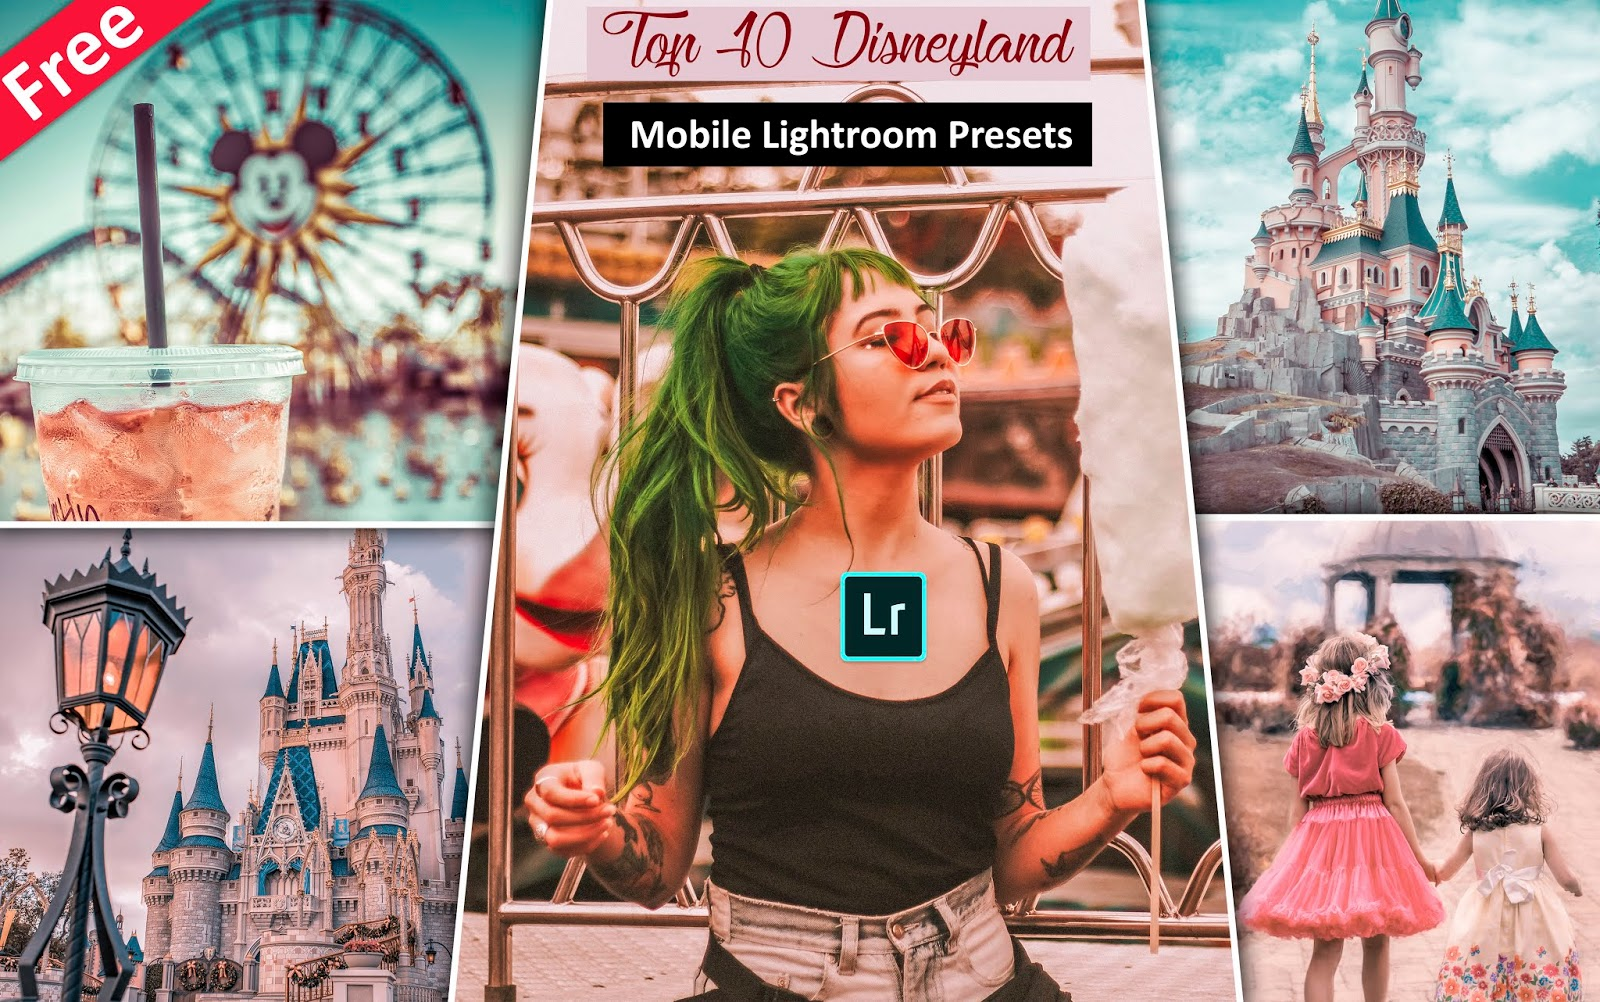 Download Top 10 Disneyland Mobile Lightroom Presets for Free | How to Edit Travel Disneyland Photos in Mobile LIghtroom